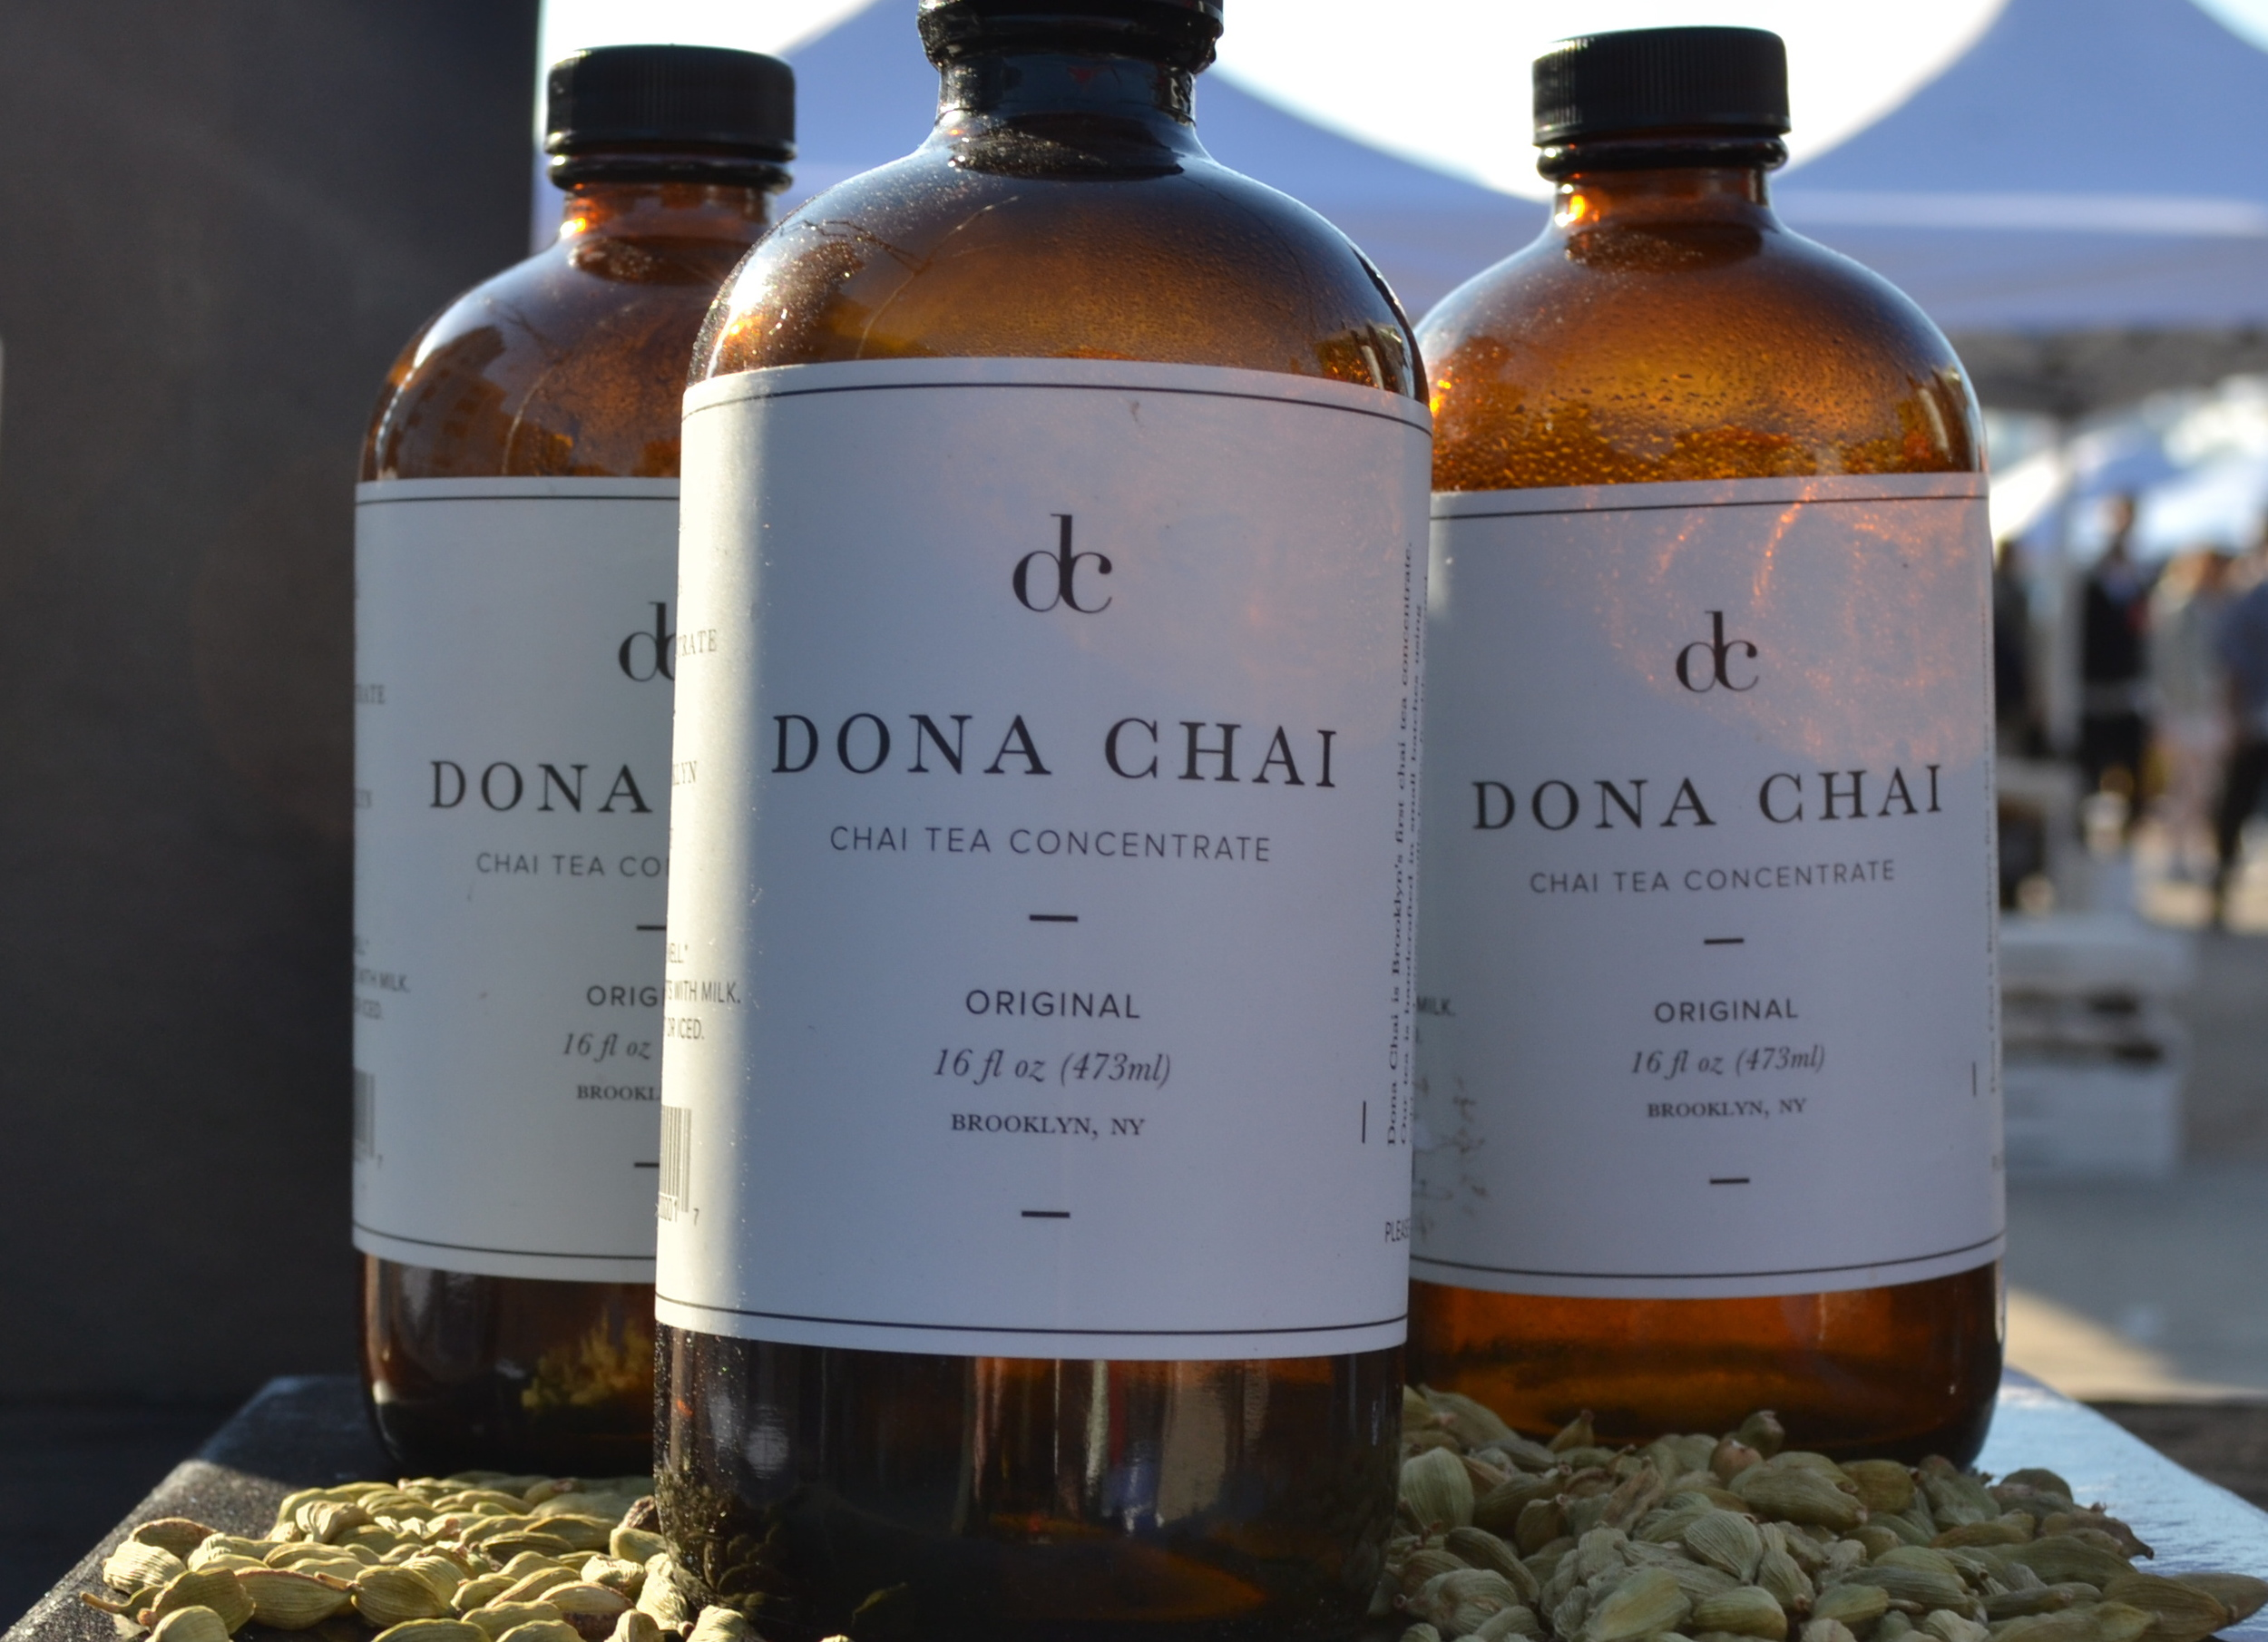 Almond milk iced chai latte for now, bottles of Dona Chai chai tea concentrate for later.